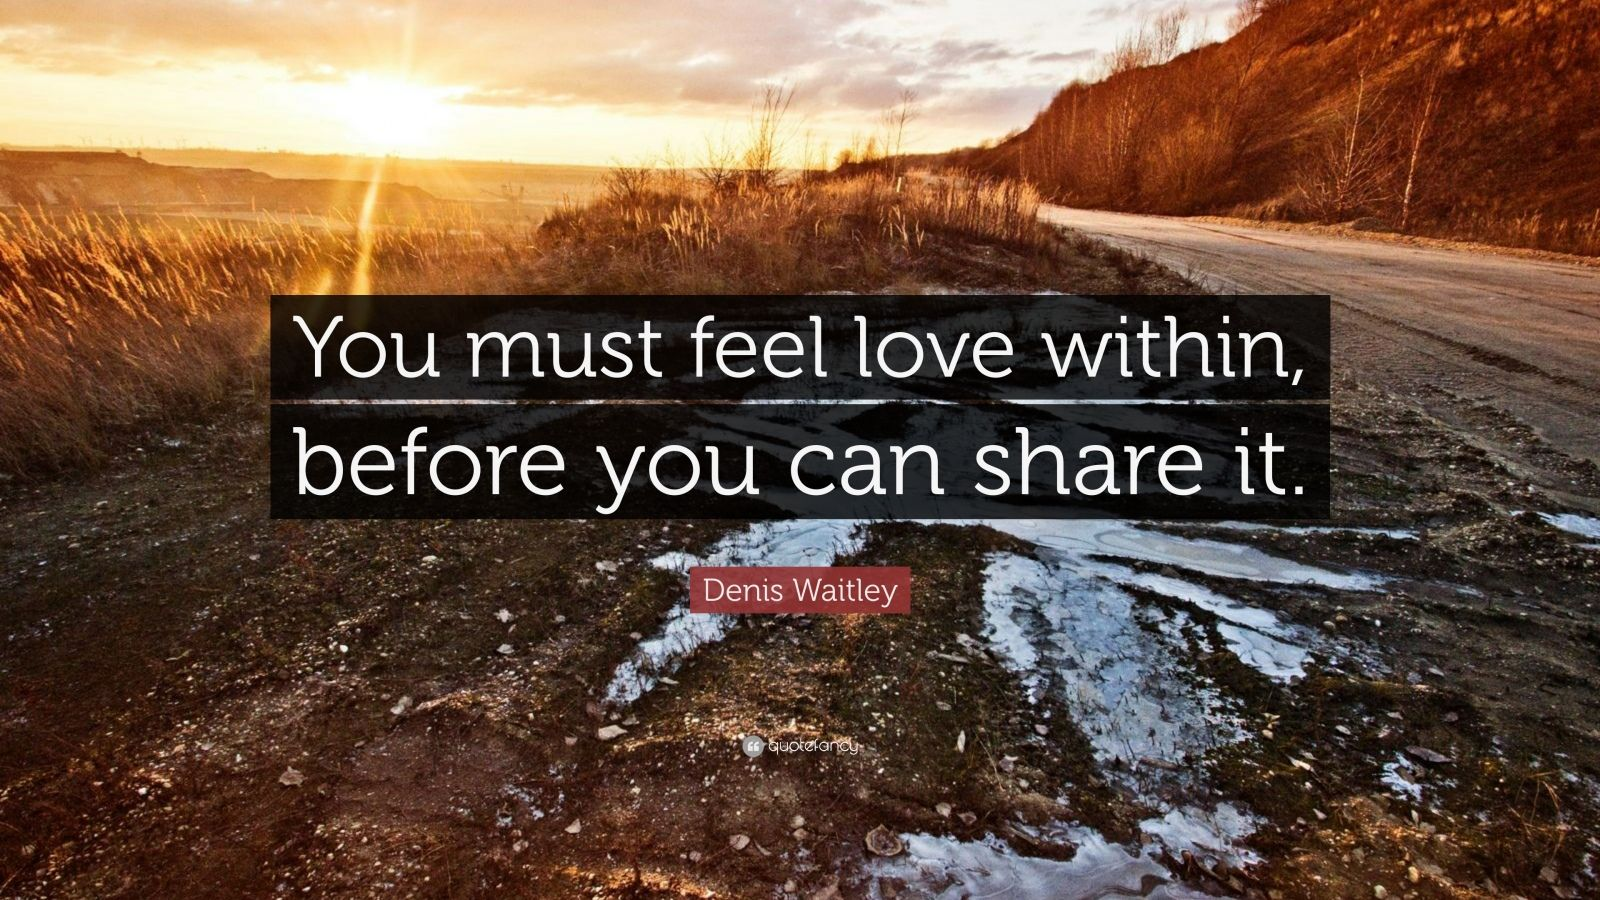 """Denis Waitley Quote: """"You must feel love within, before you can share it."""""""